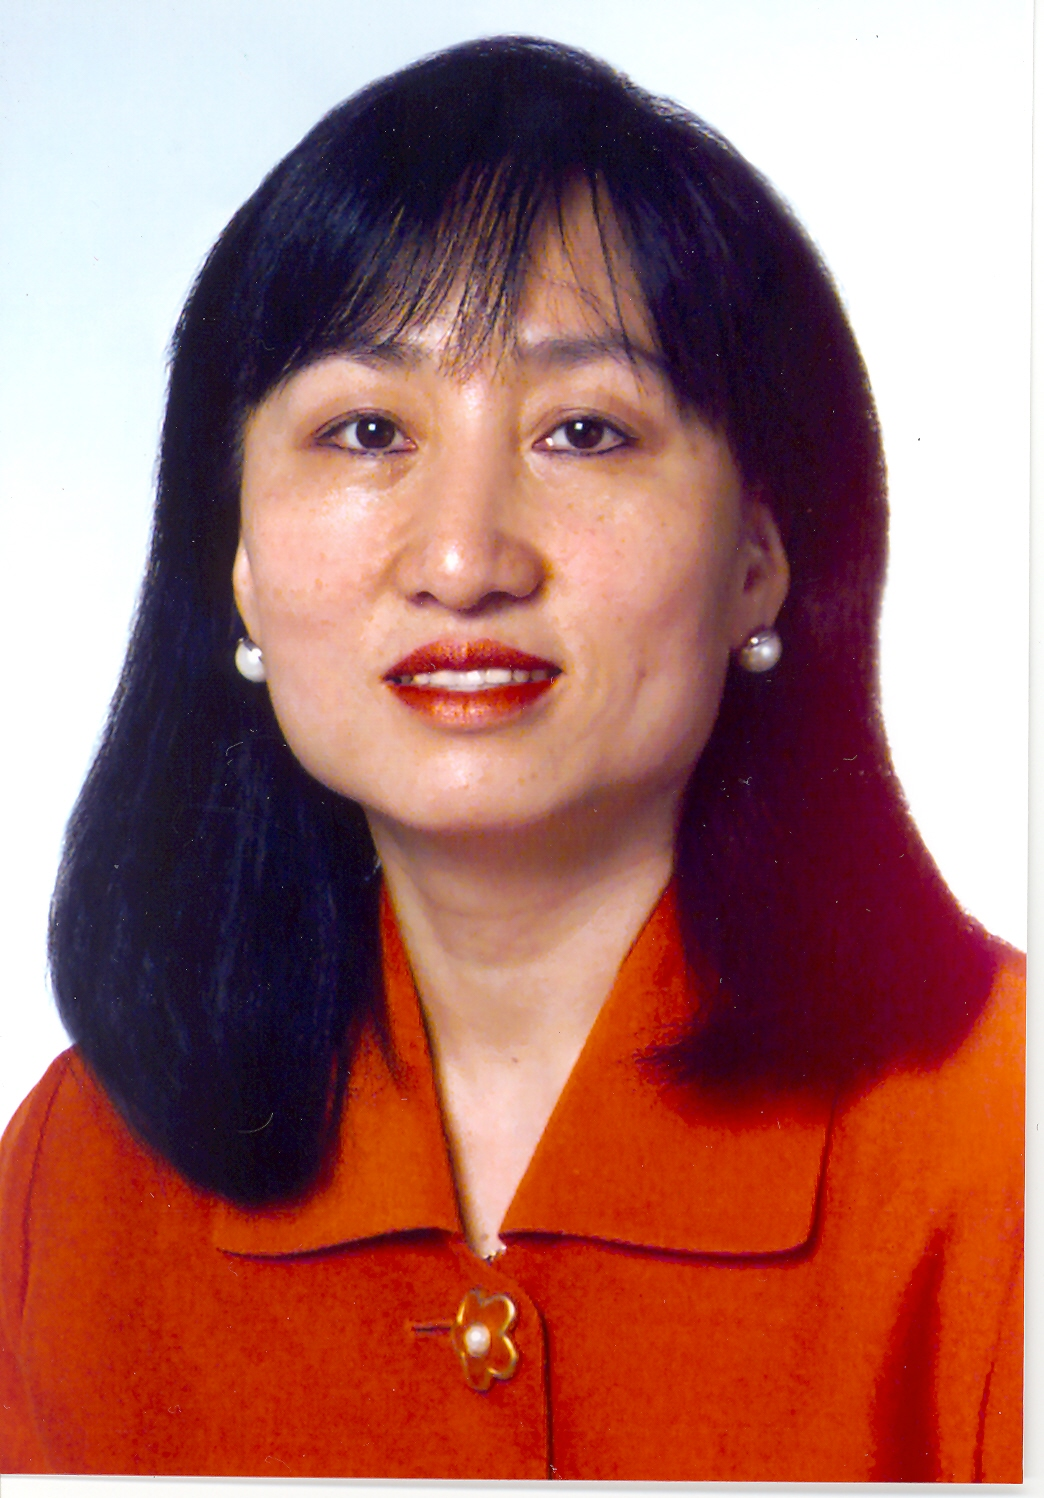 Dr. Youngsook Yoon